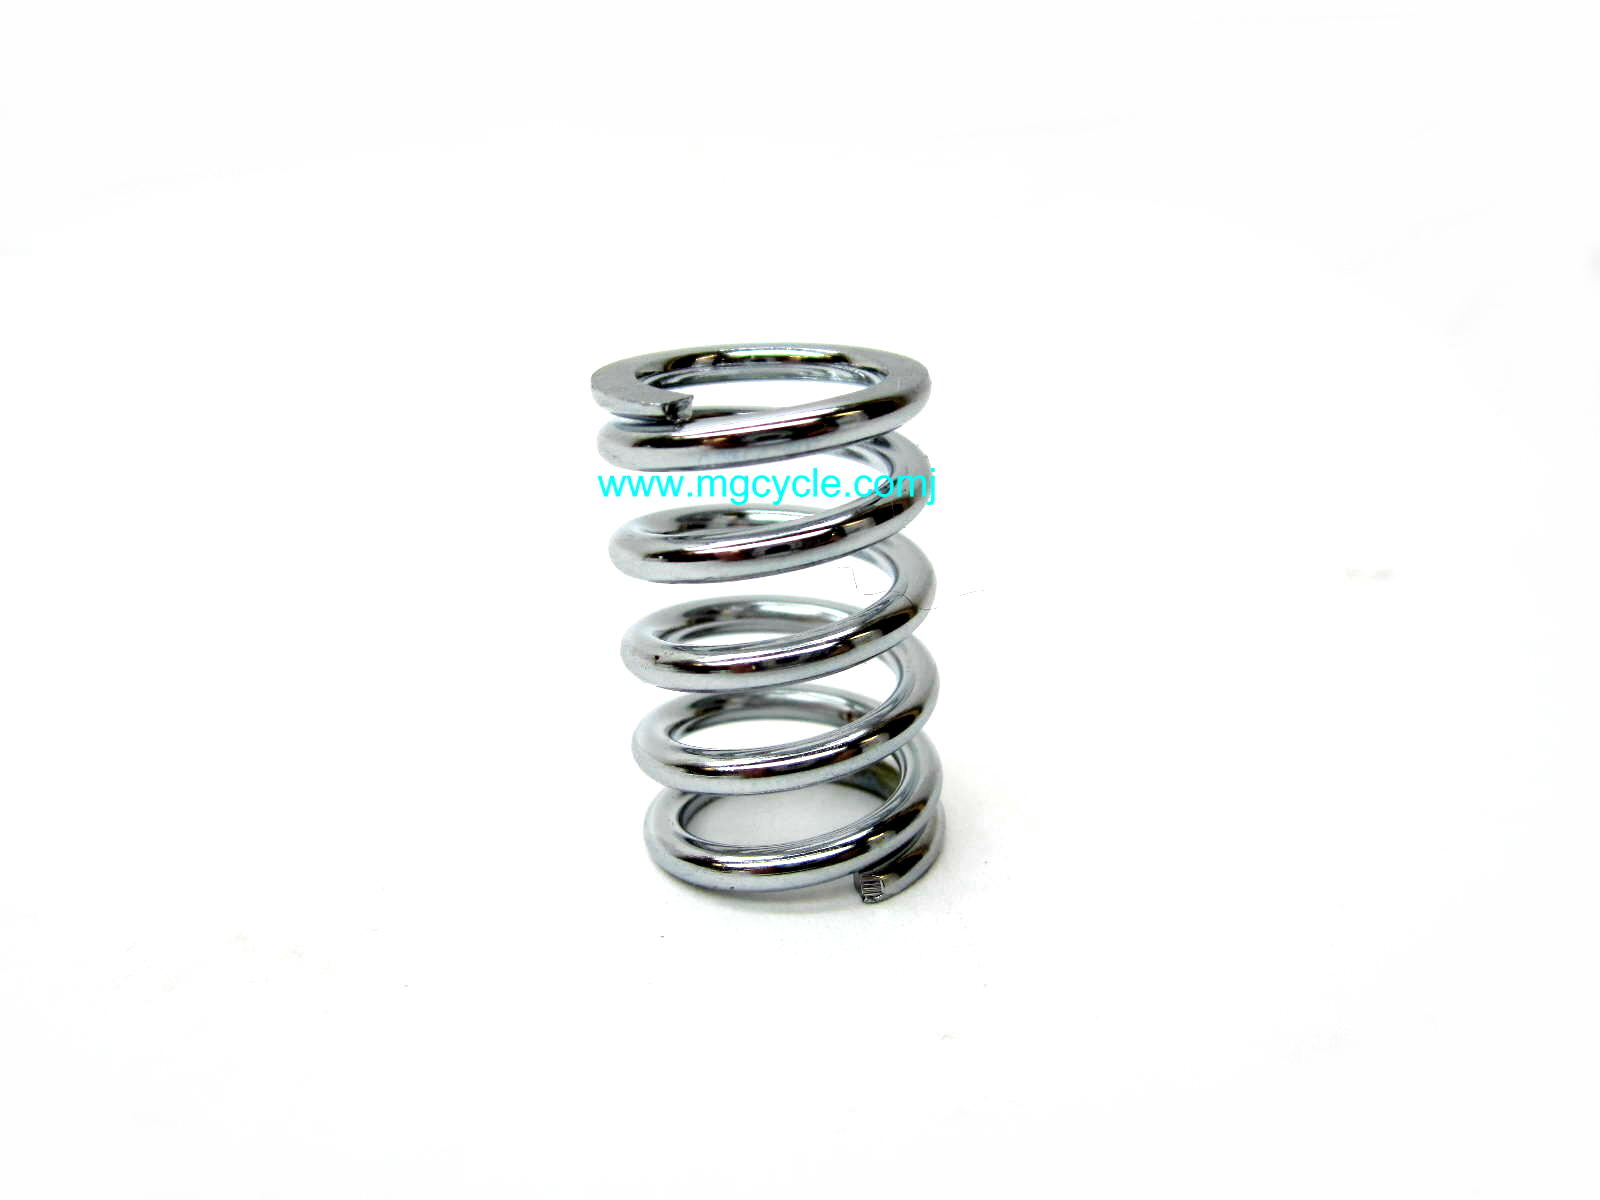 Clutch spring for dual clutch plate many big twins 1967-2010